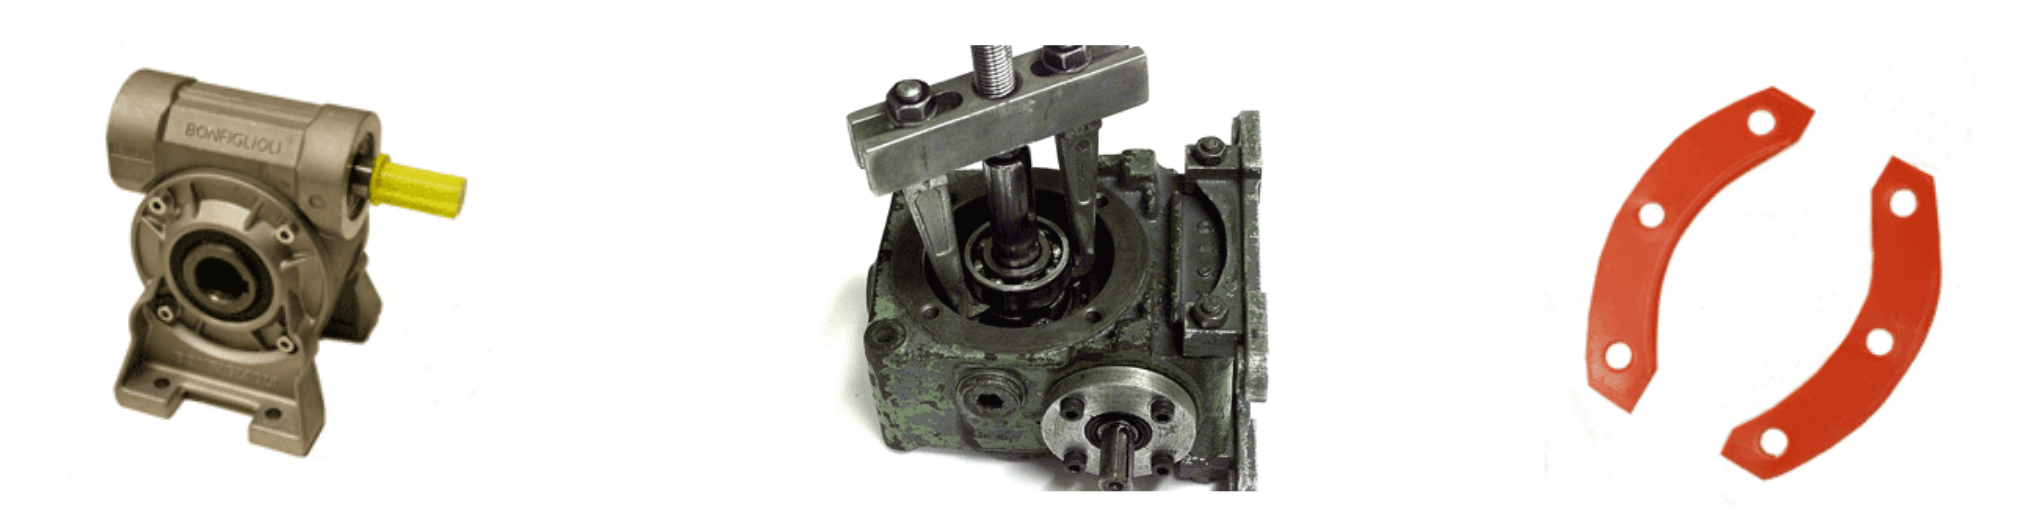 Gear box and bearing puller with gasket